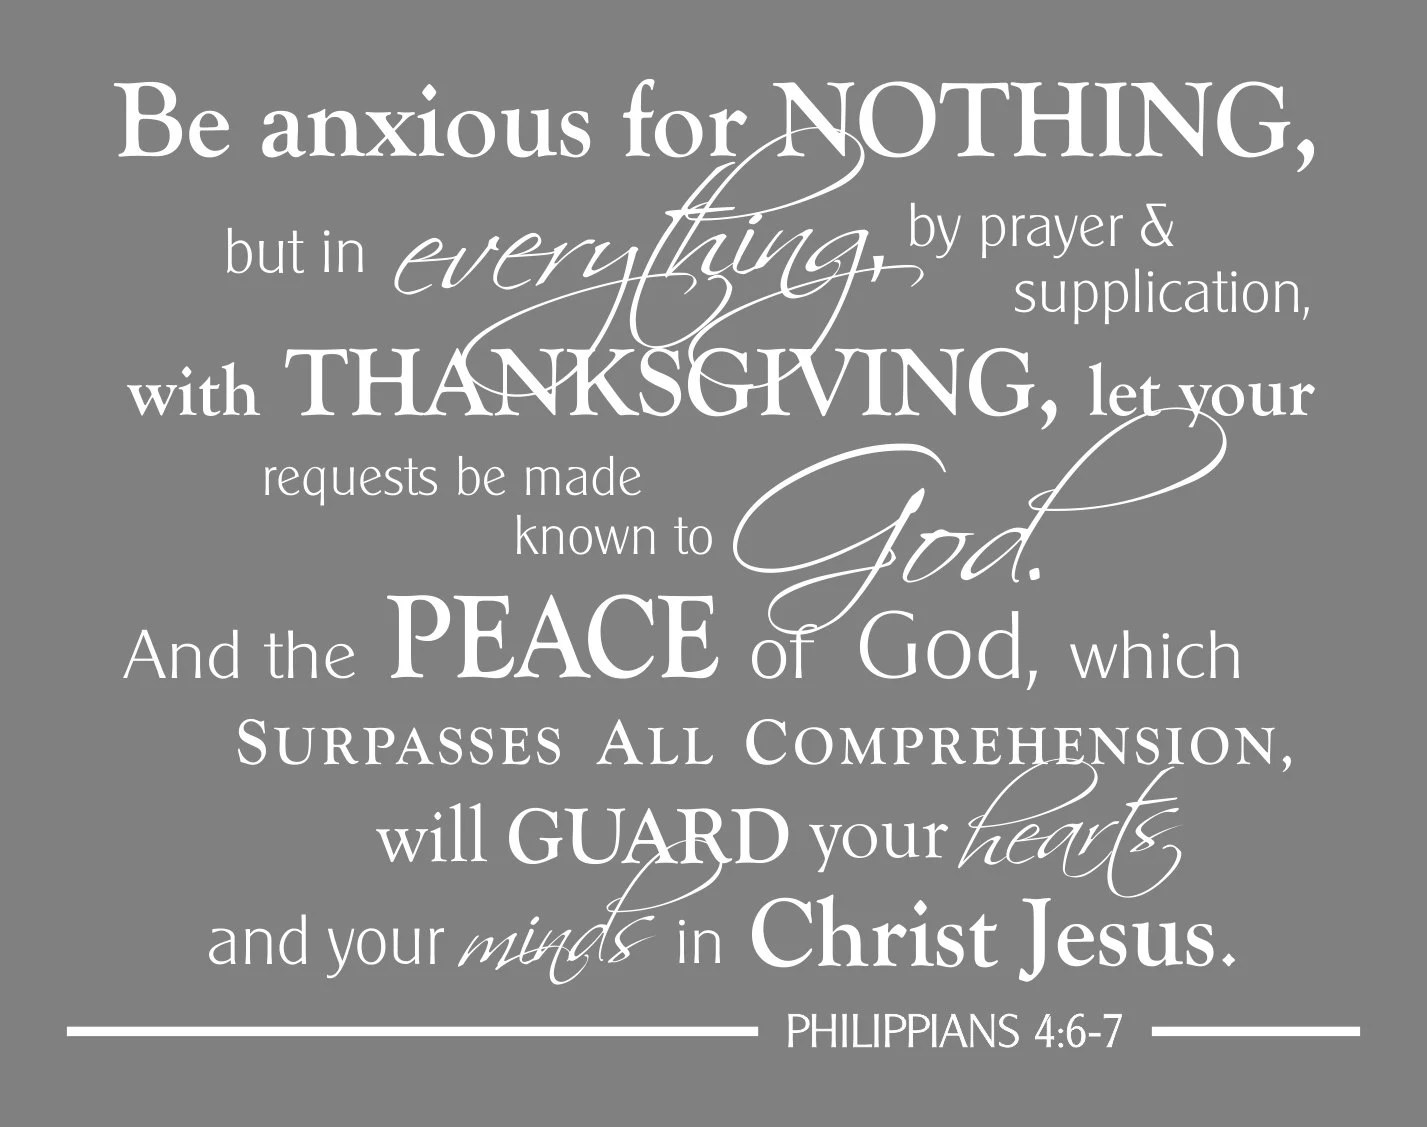 Philippians 4 6 7 Scripture Wall Art Print Be Anxious for